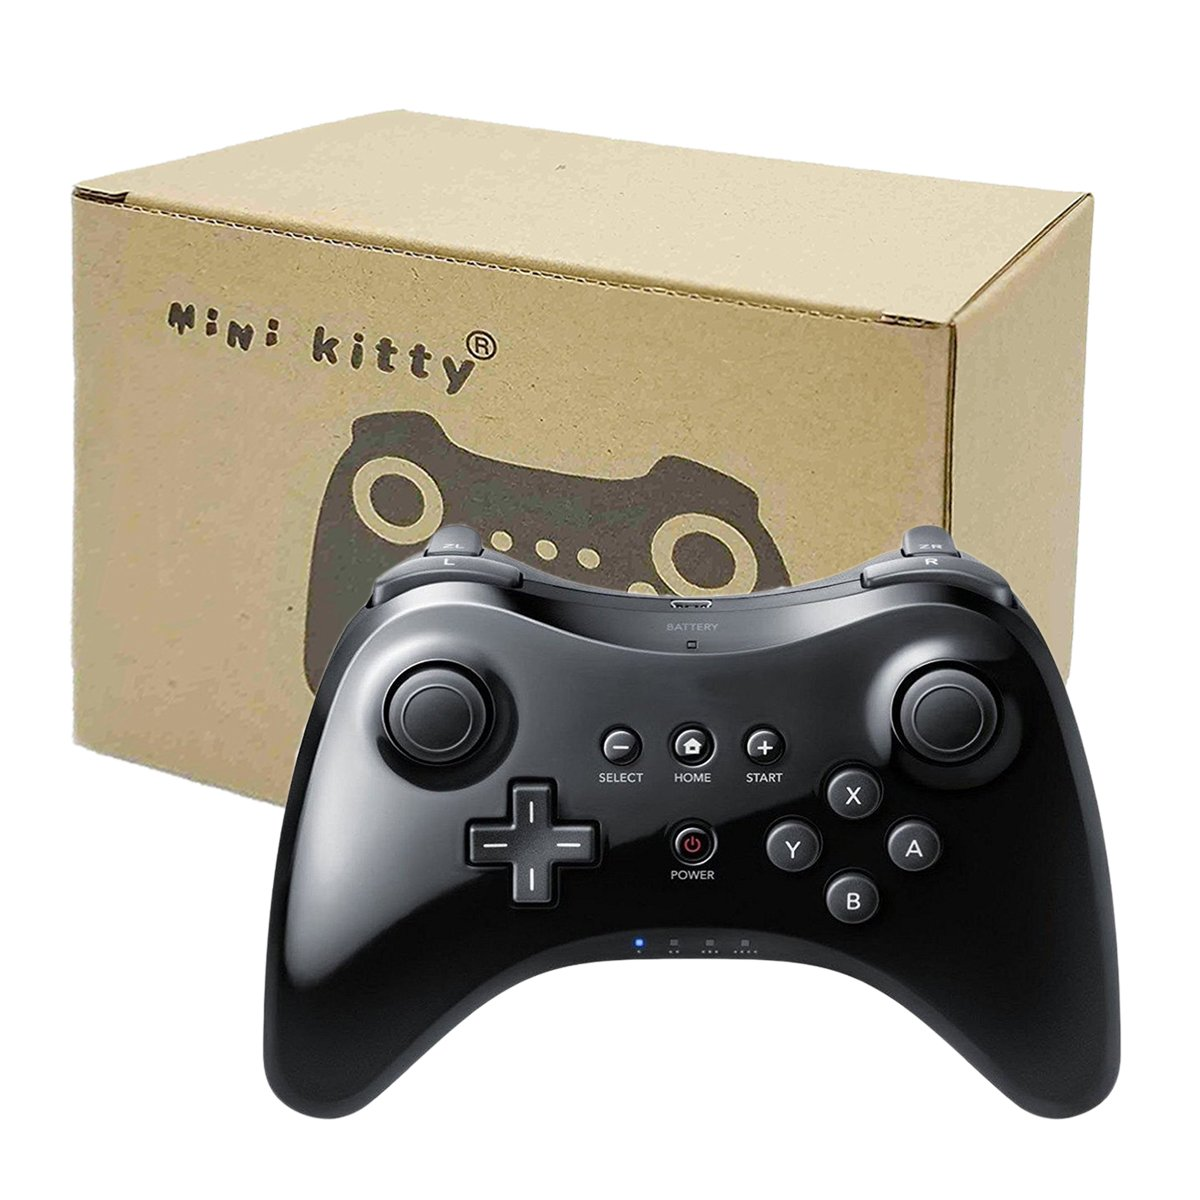 Mini Kitty Black Wii U Pro Controller Dual Analog Wireless Controller For Wii U